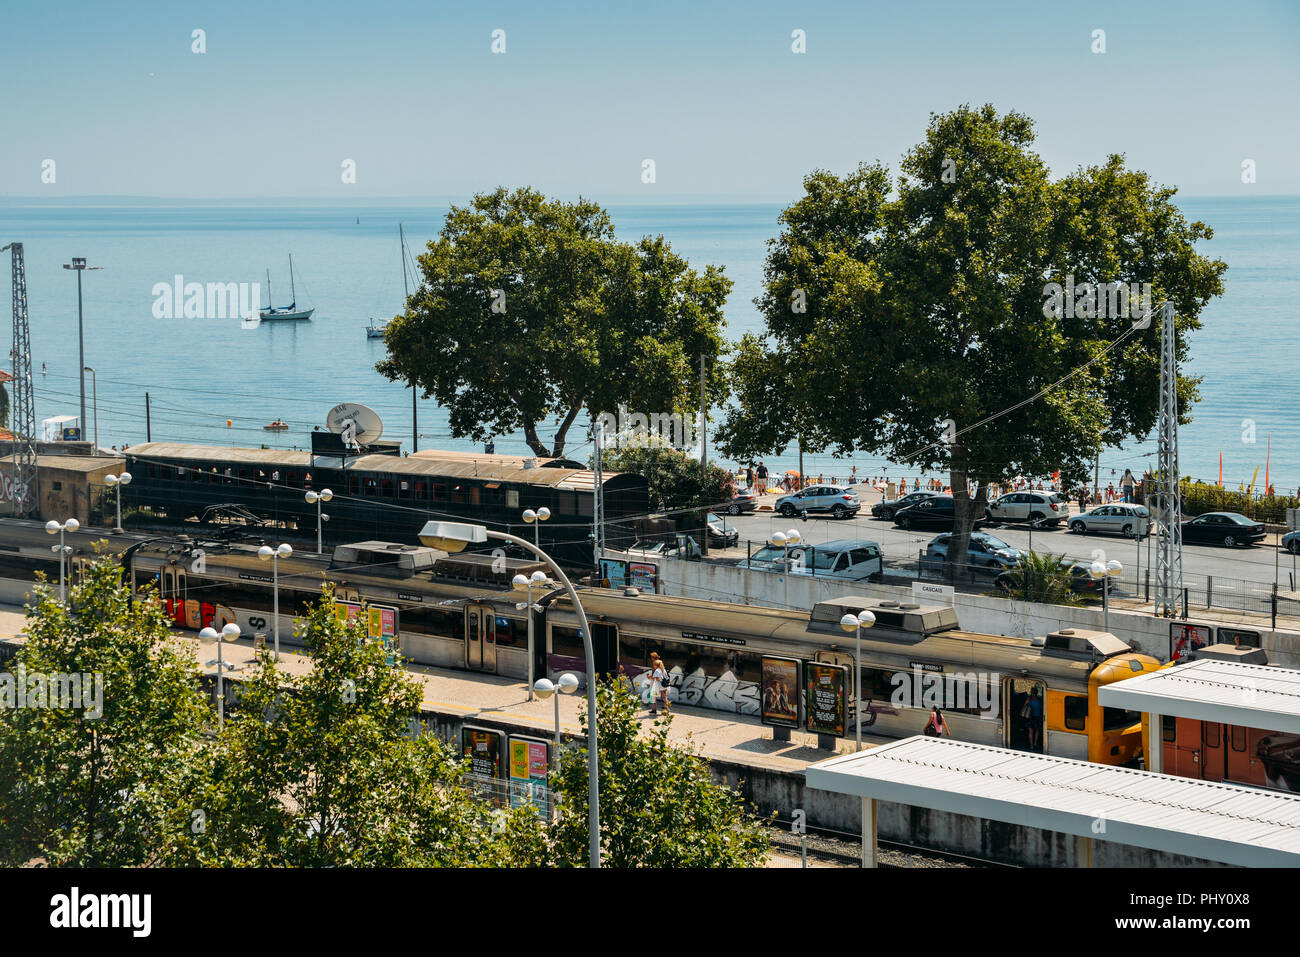 Cascais, Portugal - August 30, 2018: High perspective view of commuters at Cascais railway station, 30km west of Lisbon, Portugal Stock Photo